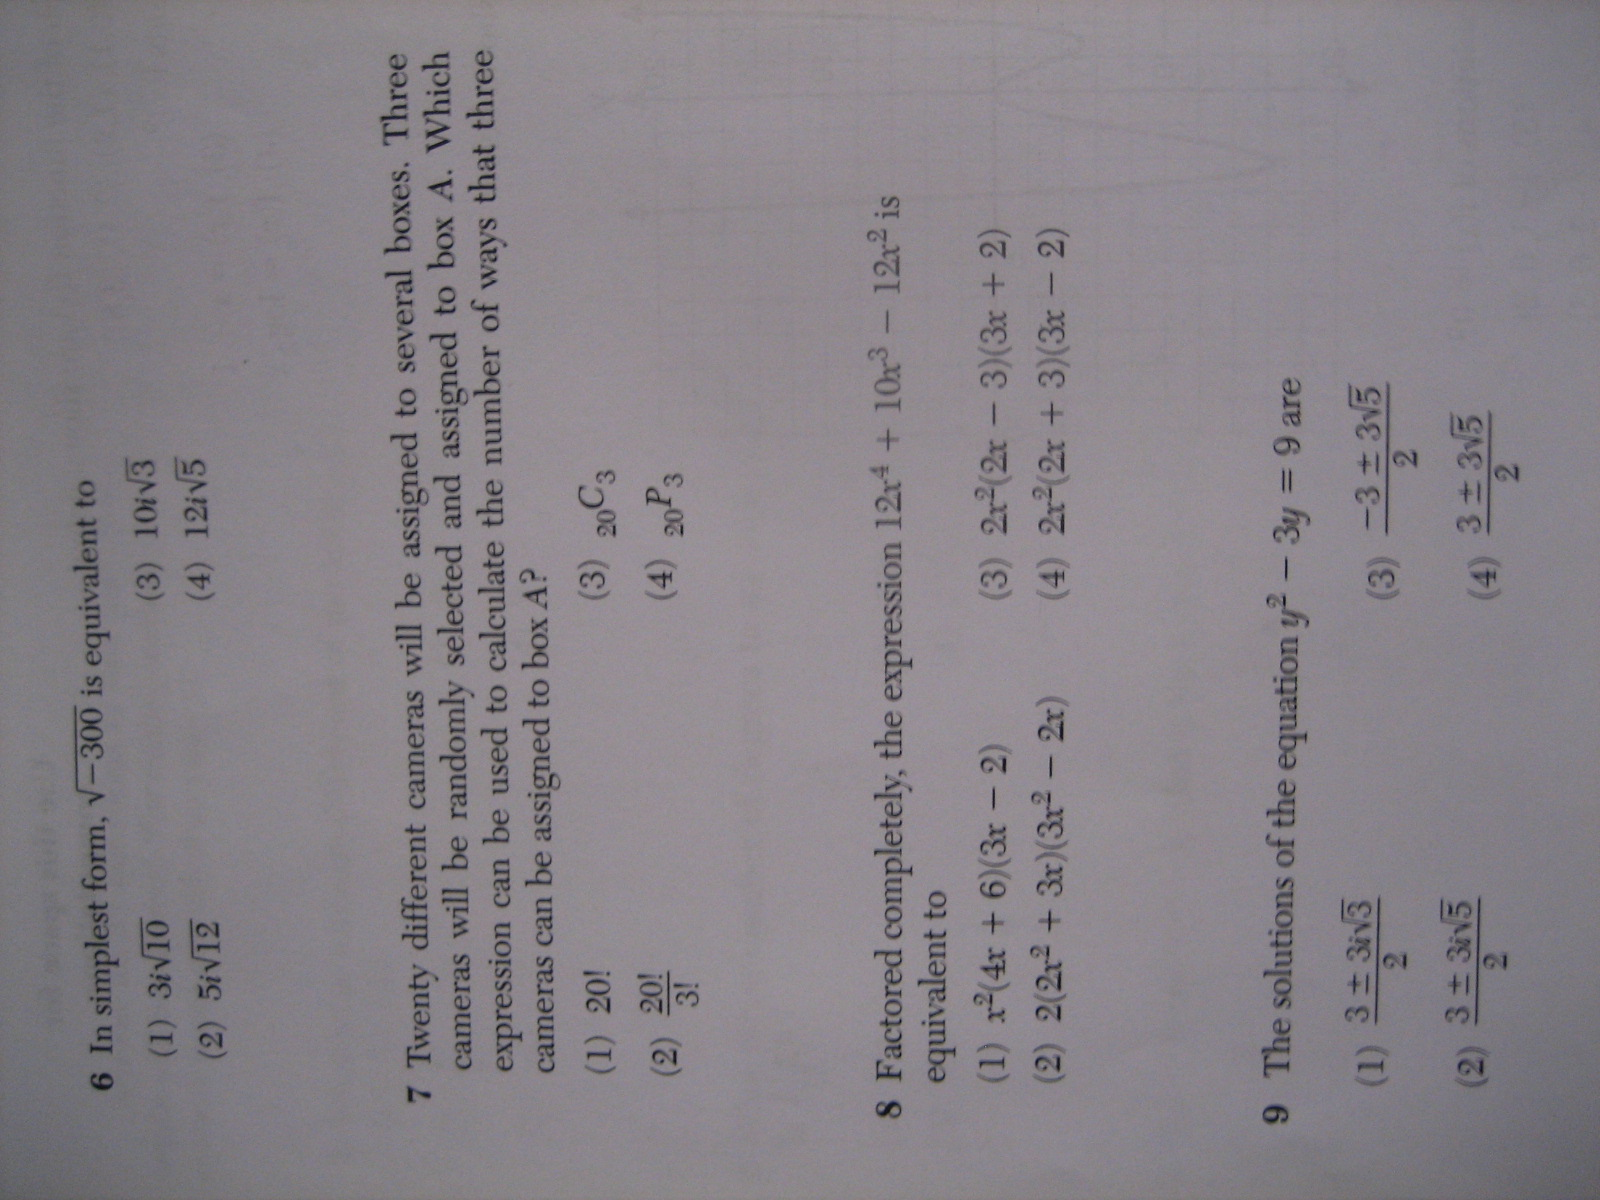 Algebra 2 Trigonometry Regents Full List Of Multiple Choice